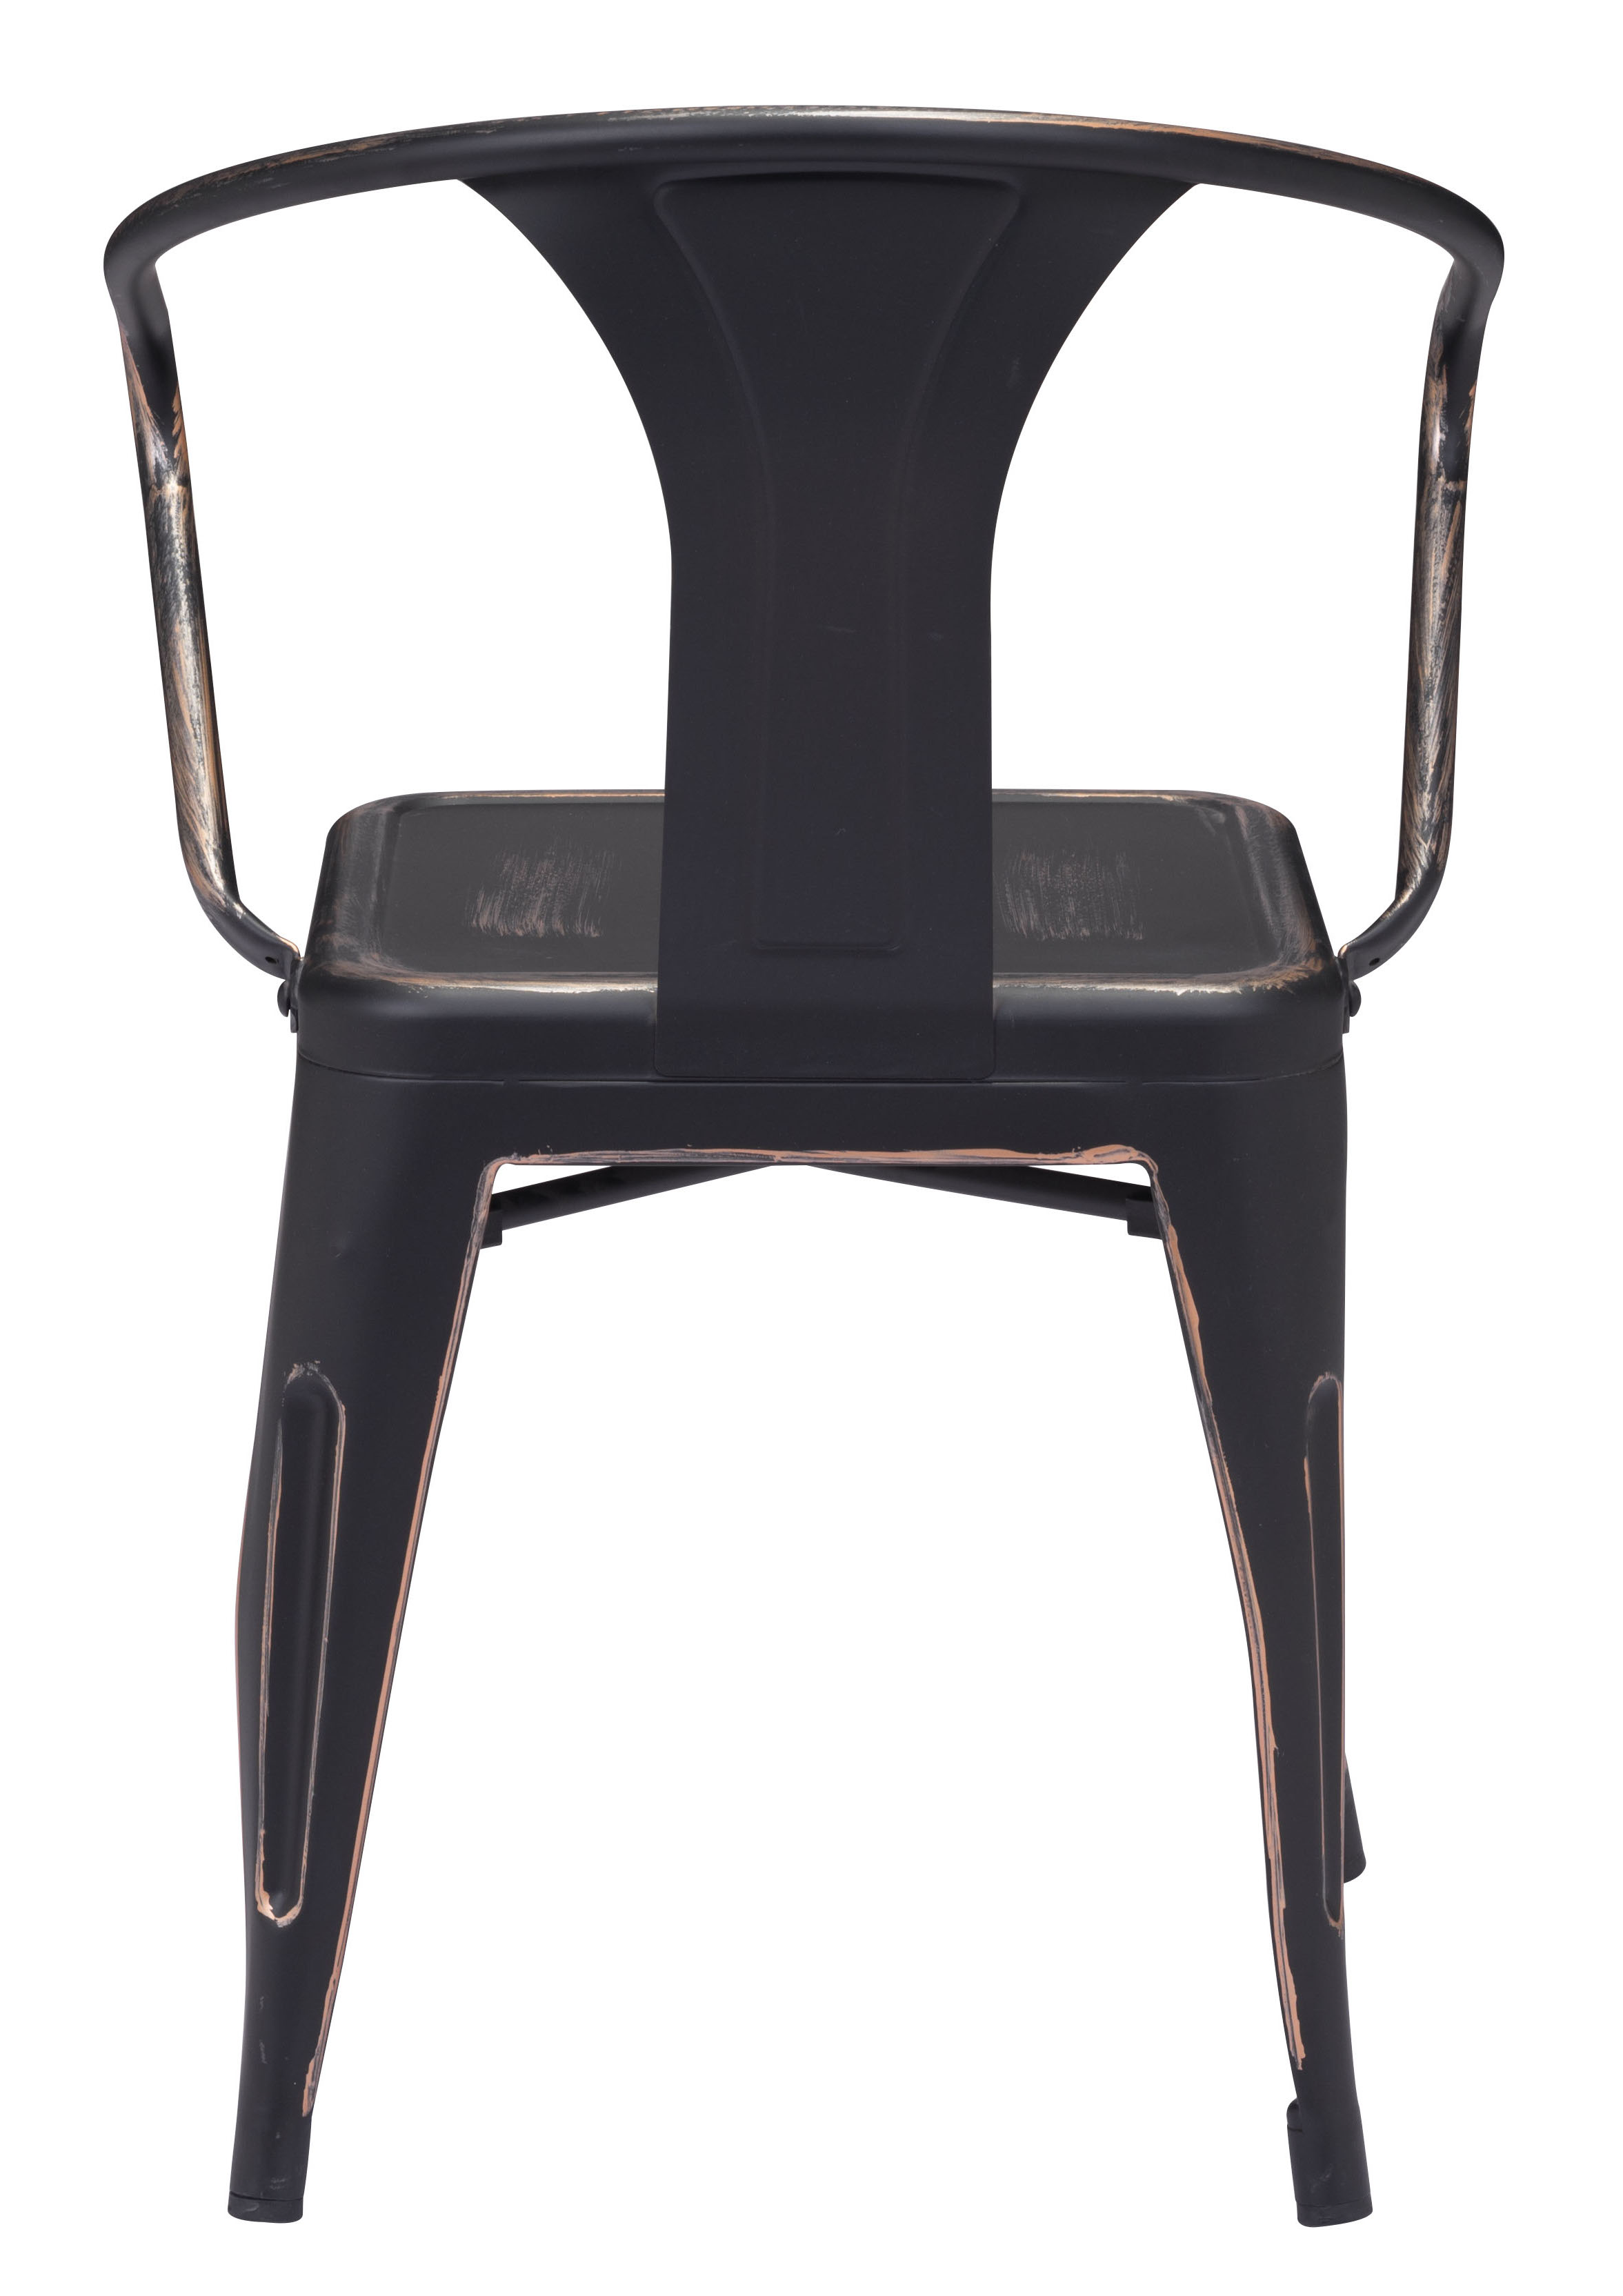 helix-chair-antique-black.jpg